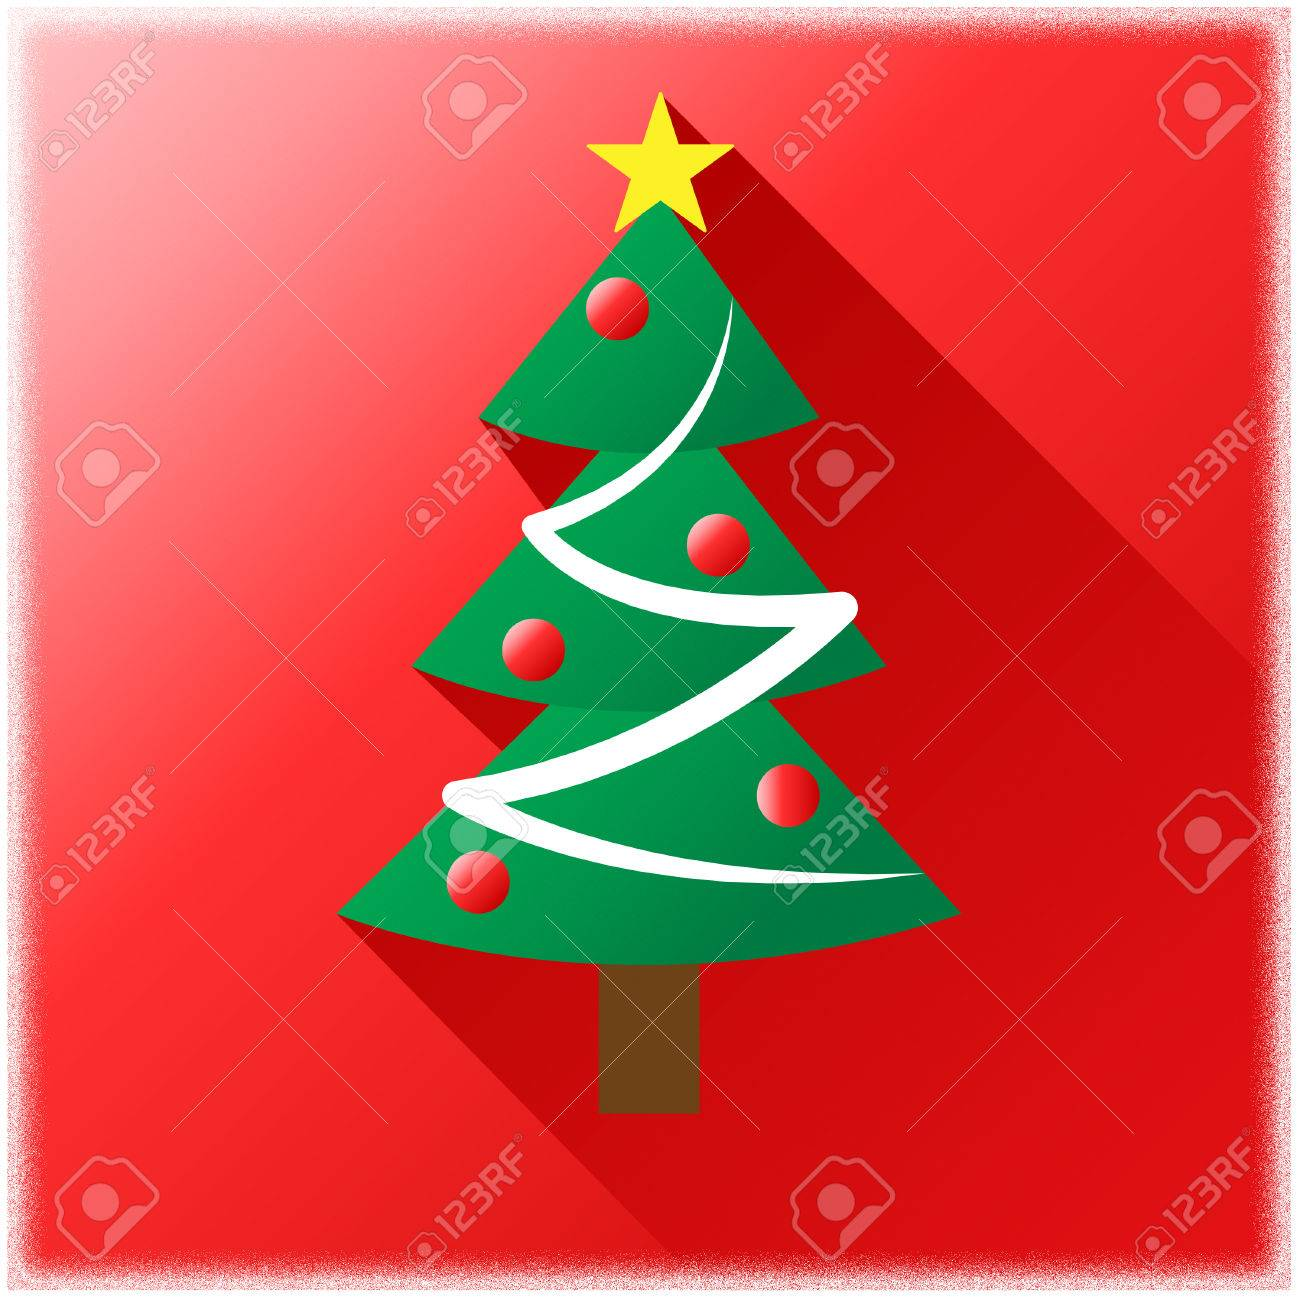 Christmas Tree Meaning.Christmas Tree Icon Meaning Happy Xmas And Sign